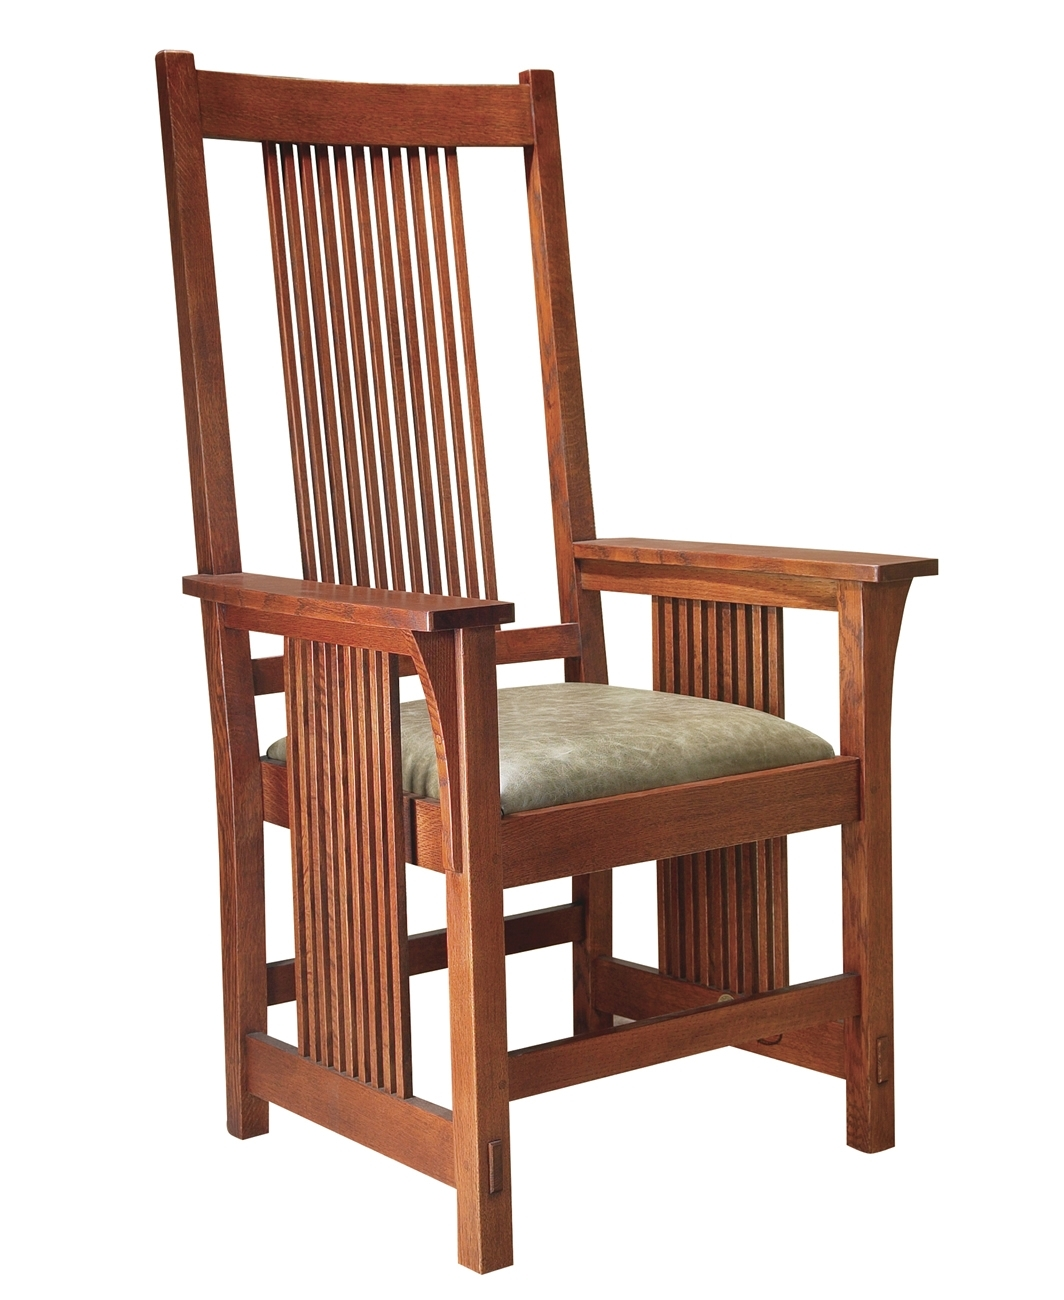 Well Known Candice Ii Slat Back Host Chairs Pertaining To Product List (View 20 of 20)